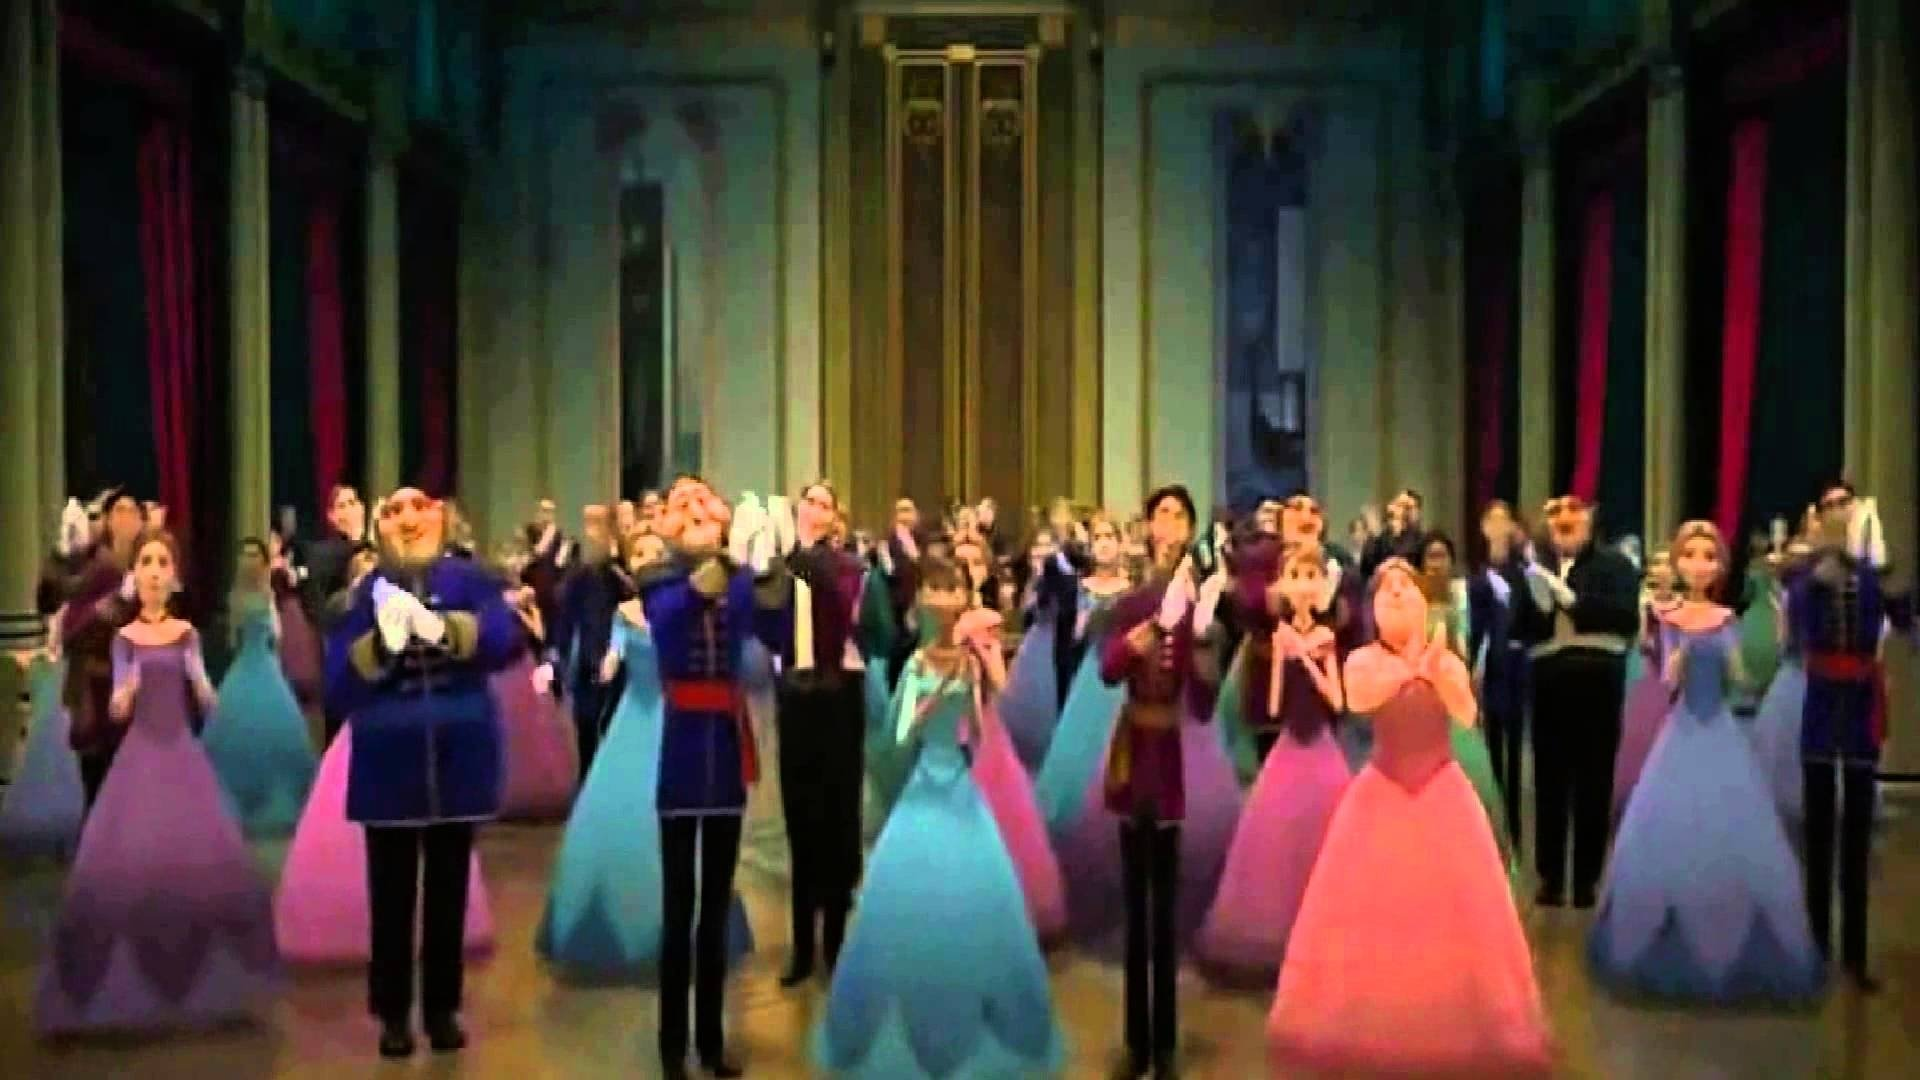 10 Fabulous Swan Princess This Is My Idea this is my idea crossover jelsa youtube 2020